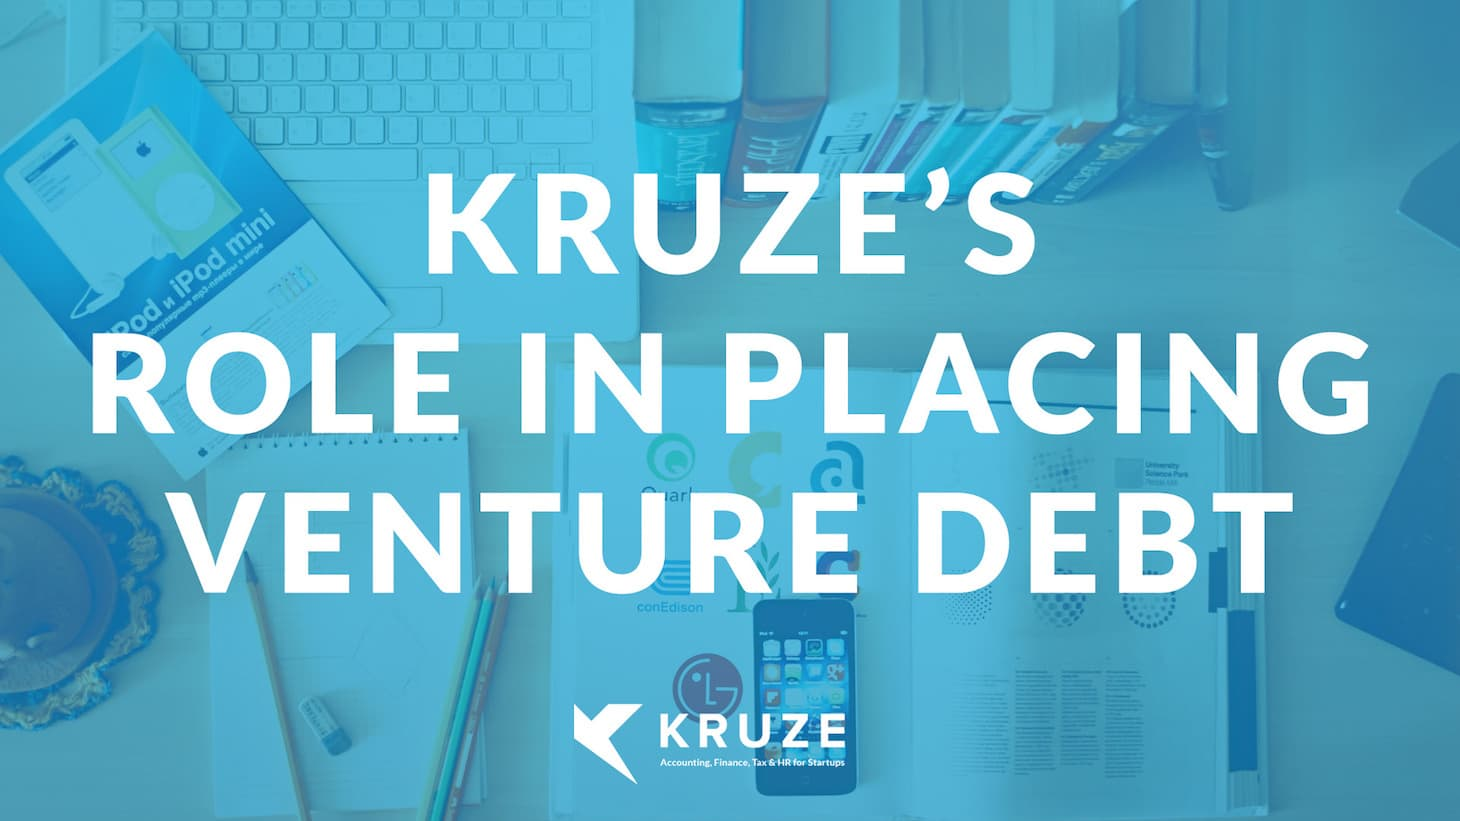 Kruze Consulting's Role in Placing Venture Debt